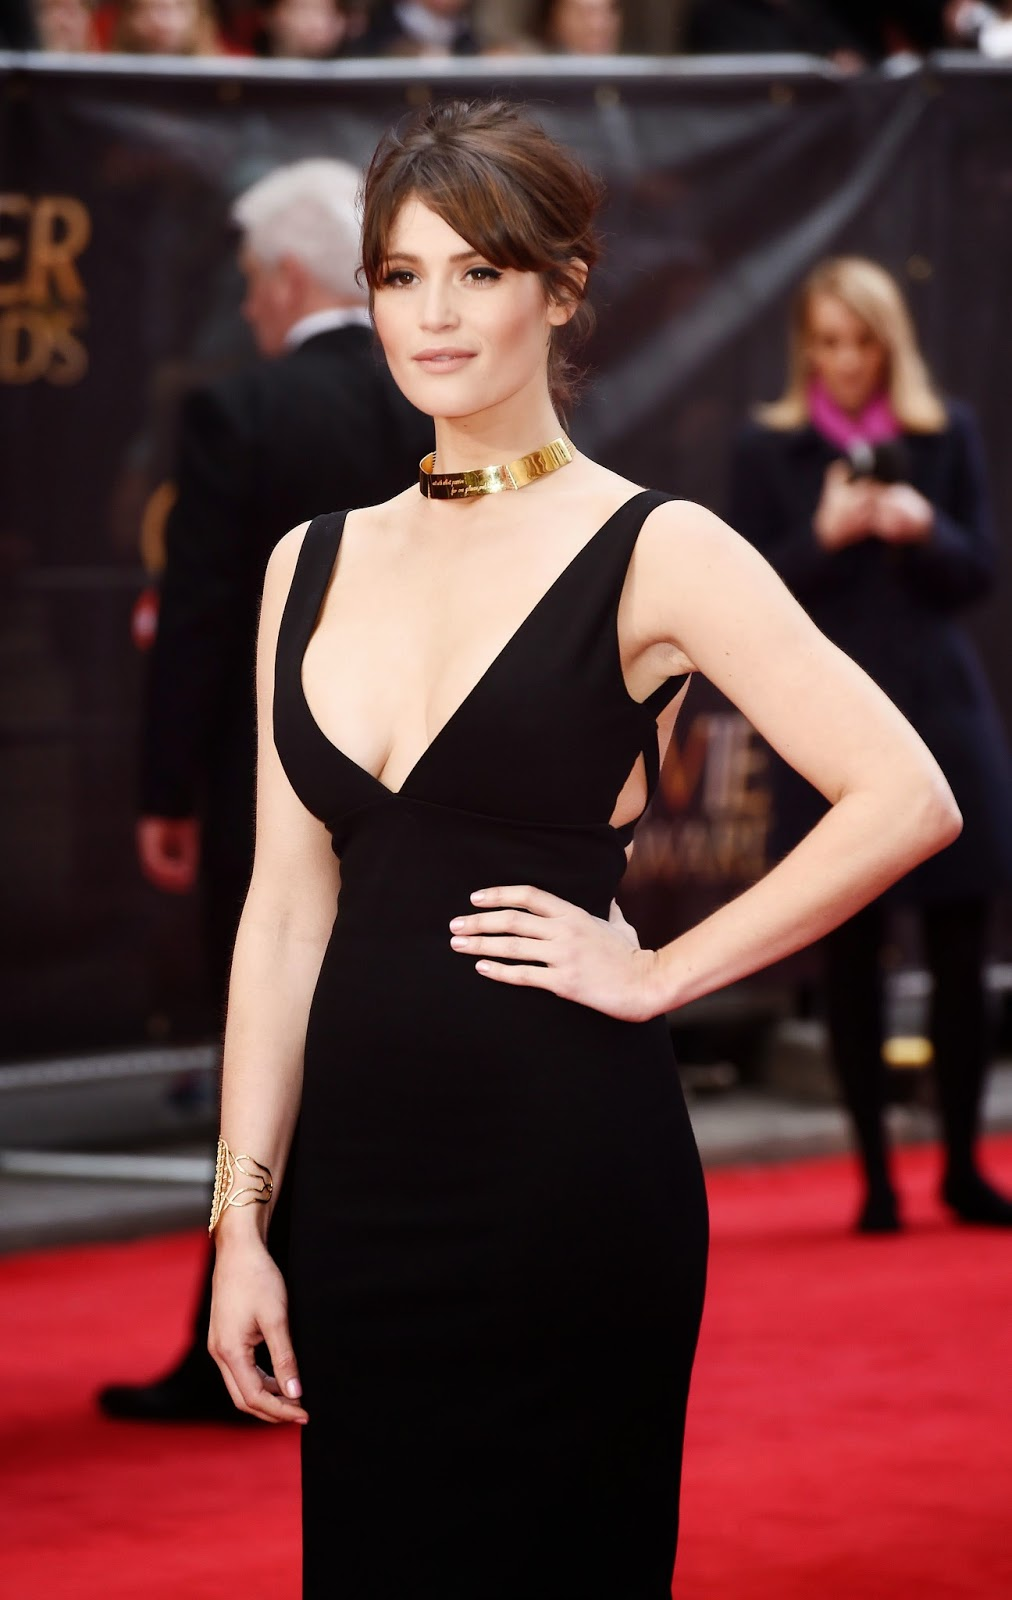 Actress @ Gemma Arterton - The Olivier Awards in London